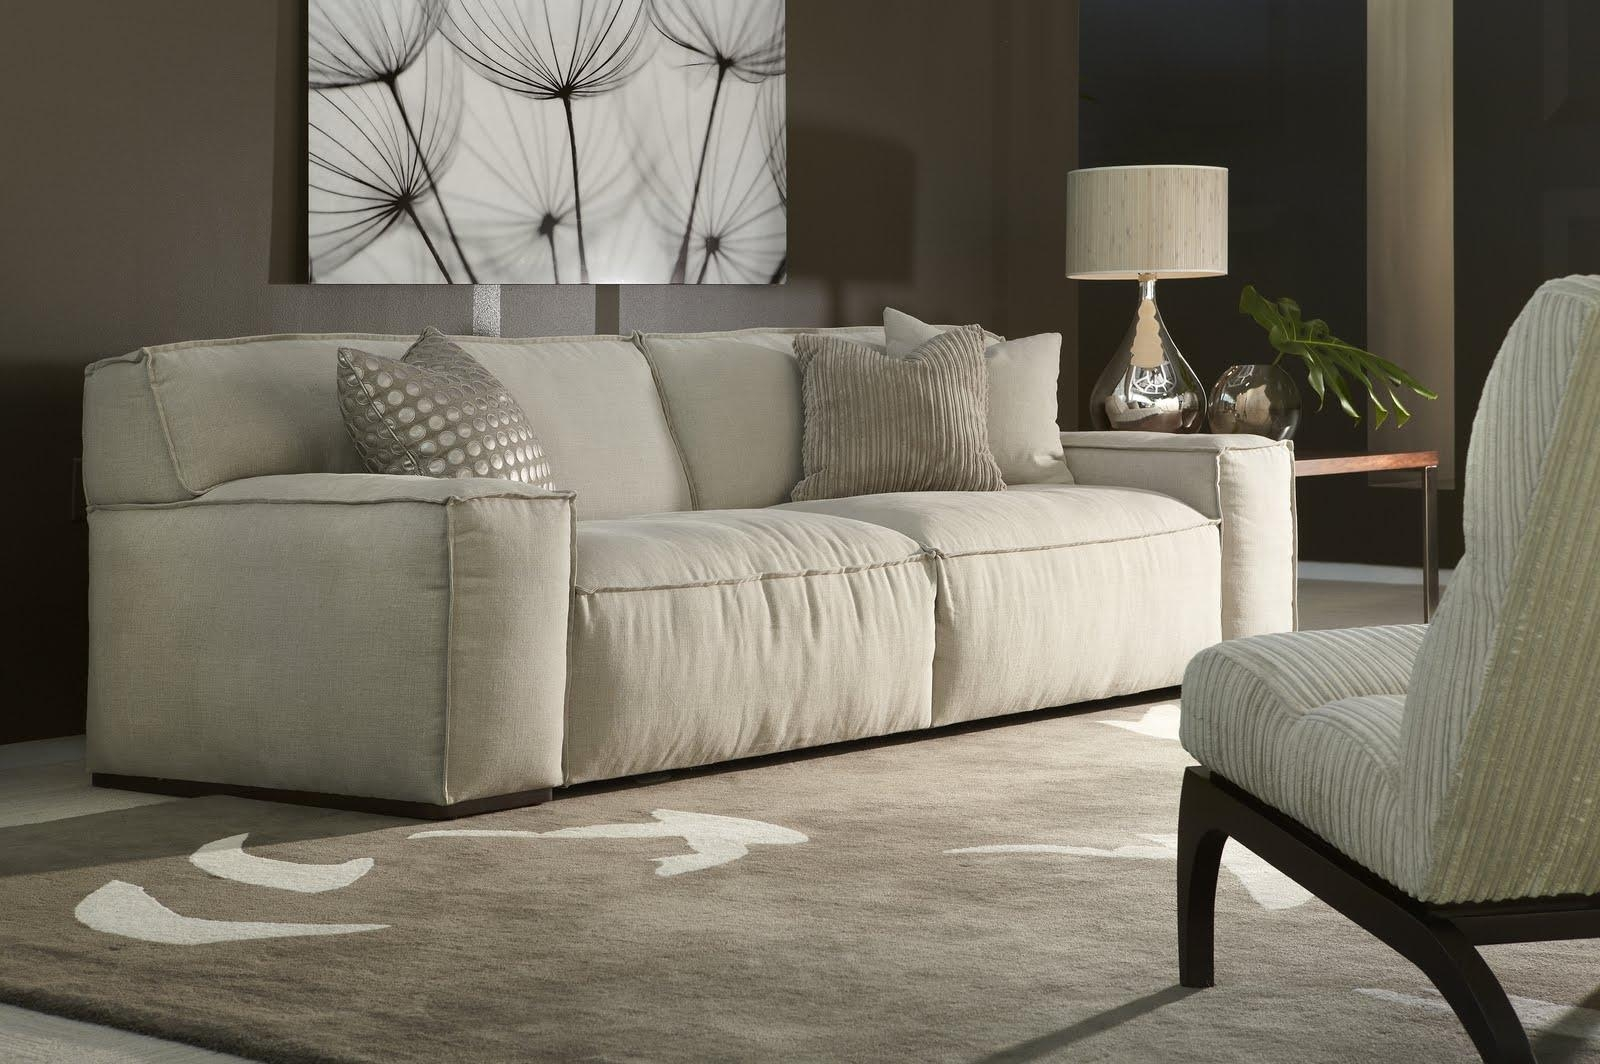 Sofas Center : Excellent Down Sectional Sofa Images Concept Within Down Filled Sectional Sofa (Image 13 of 15)